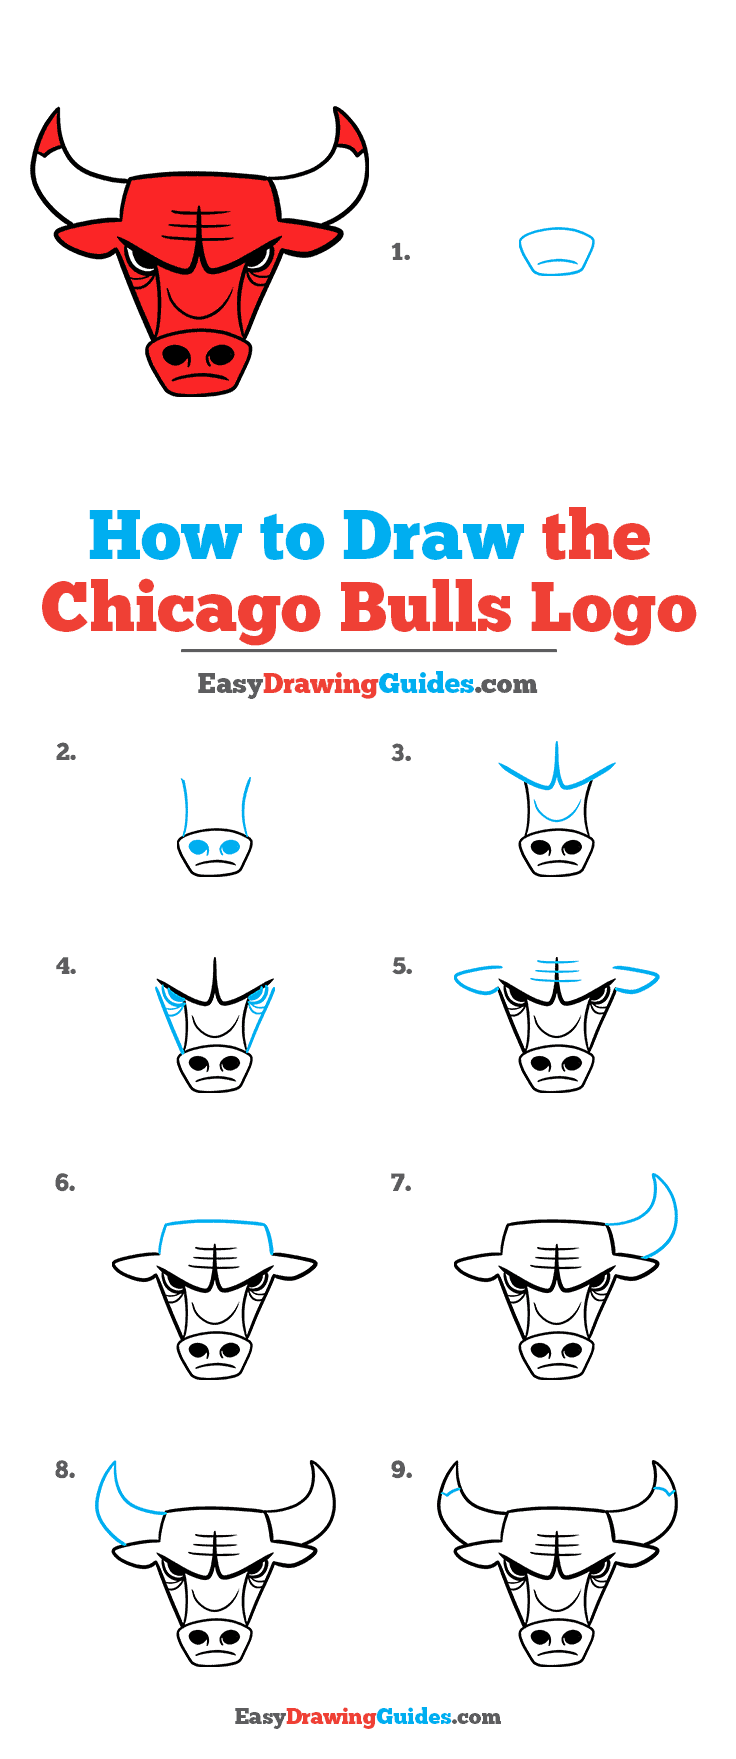 How to Draw the Chicago Bulls Logo Step by Step Tutorial Image